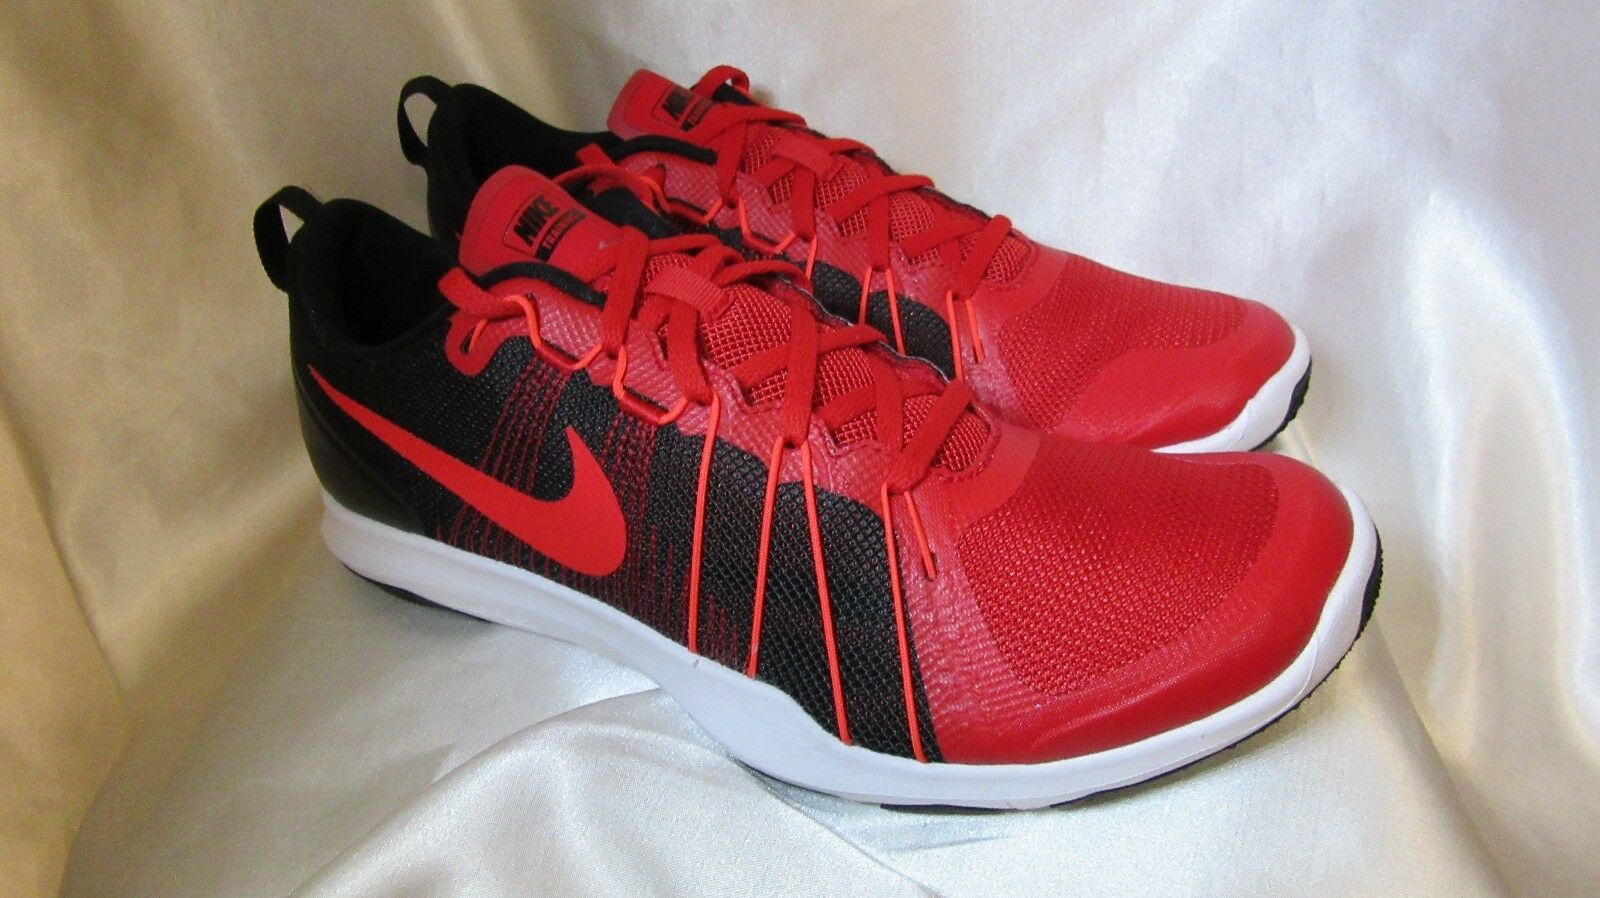 e78b0ec6ed9f MEN`S NIKE FLEX TRAIN AVER ATHLETIC SNEAKERS SIZE 10M NEW  831568 600  UNVRSTY